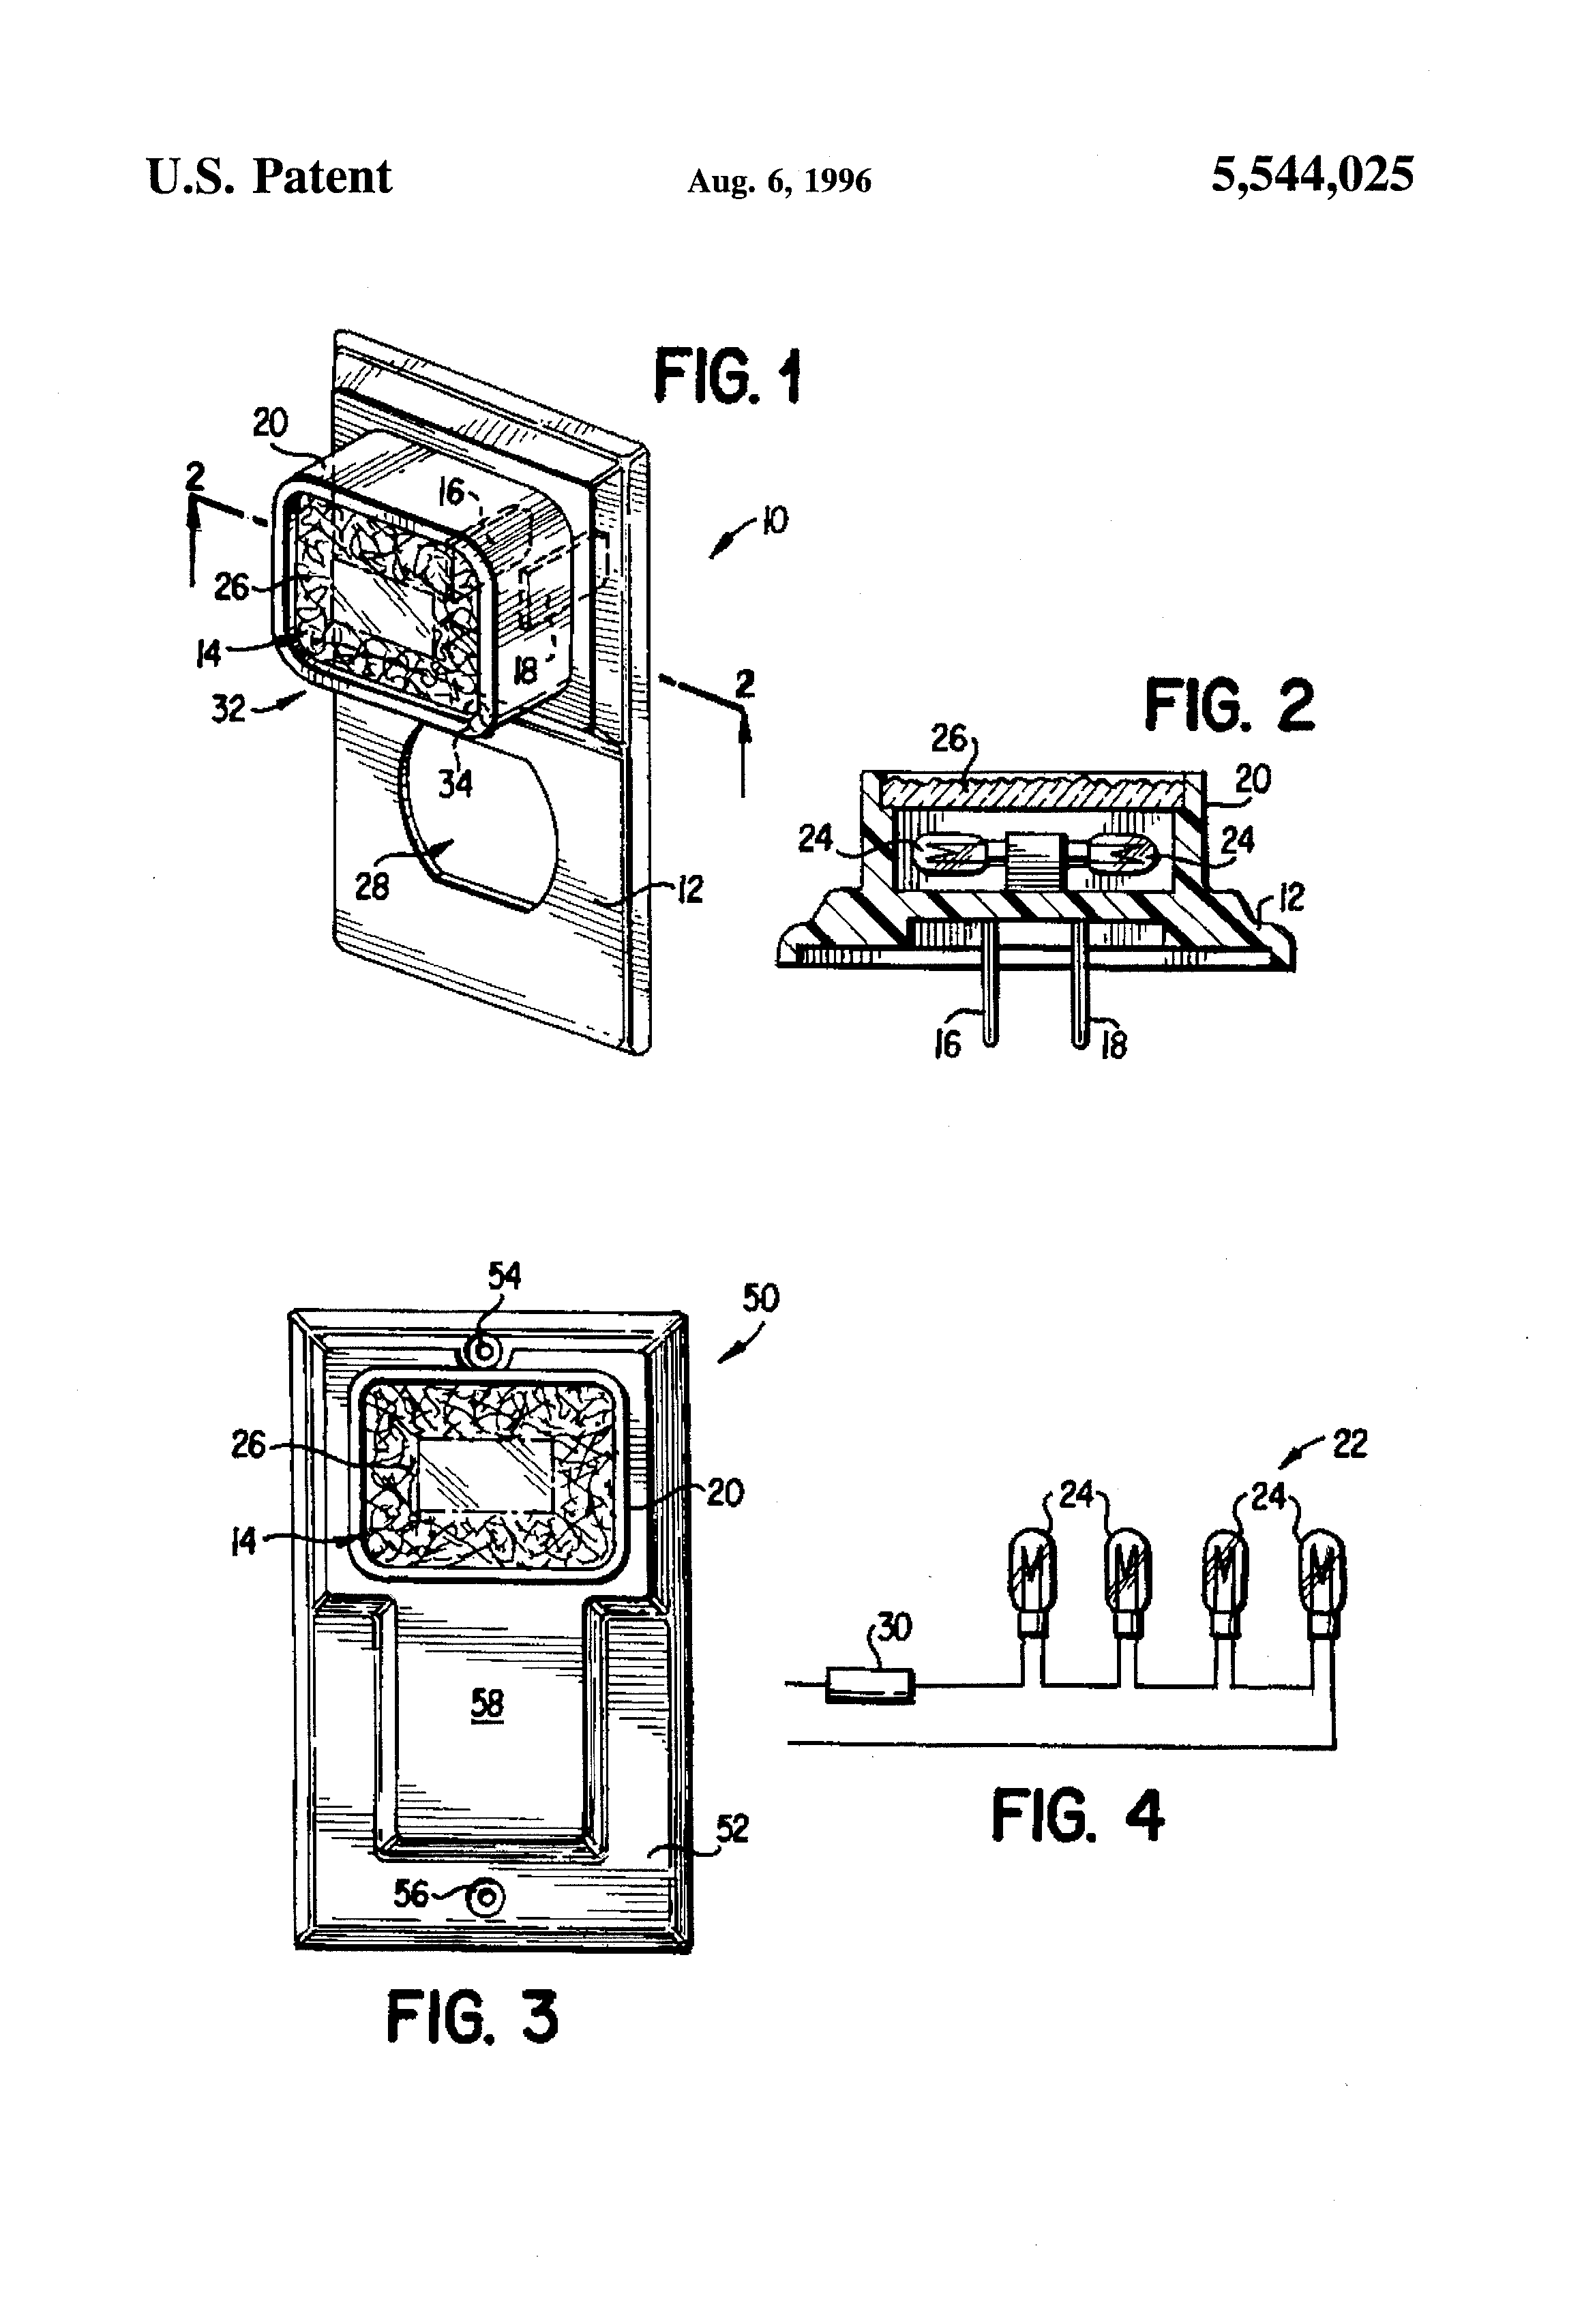 Pivoting Face Receptacle Google Patents On Wiring In Outlets Parallel Or Series Patent Us5544025 Outlet Cover Plate Incorporating A Nightlight